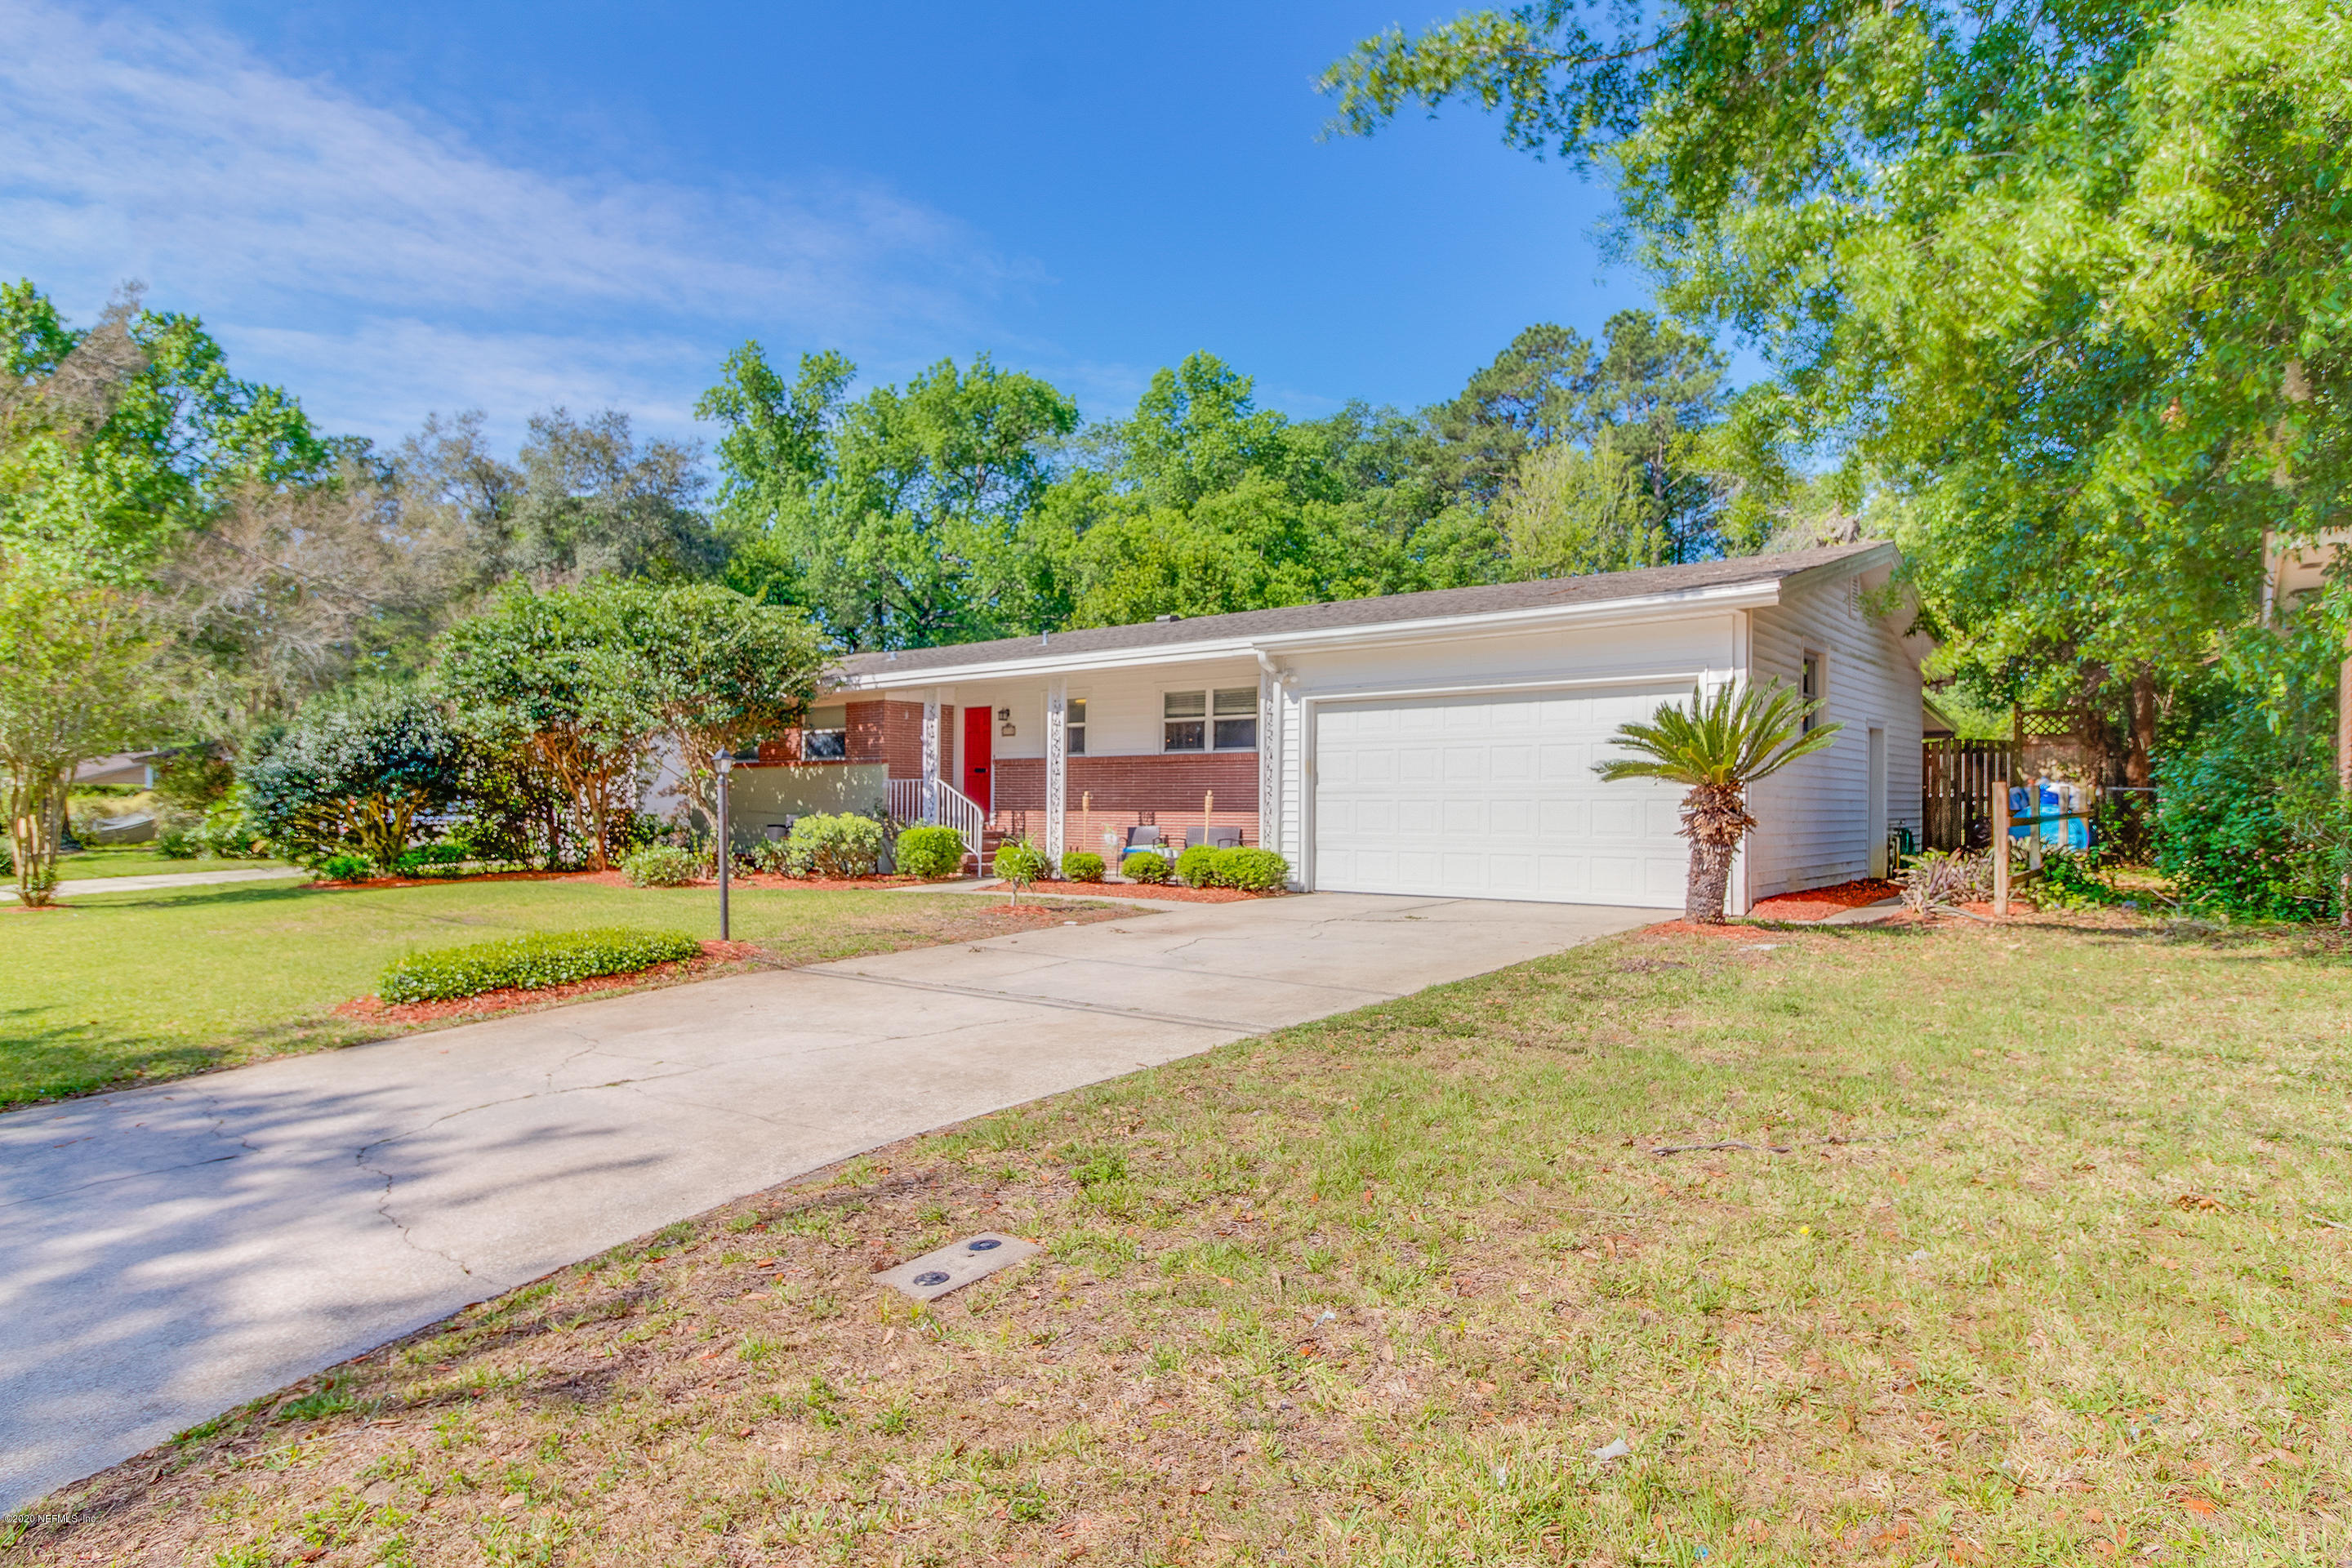 1718 WHITMAN, JACKSONVILLE, FLORIDA 32210, 4 Bedrooms Bedrooms, ,2 BathroomsBathrooms,Residential,For sale,WHITMAN,1047891